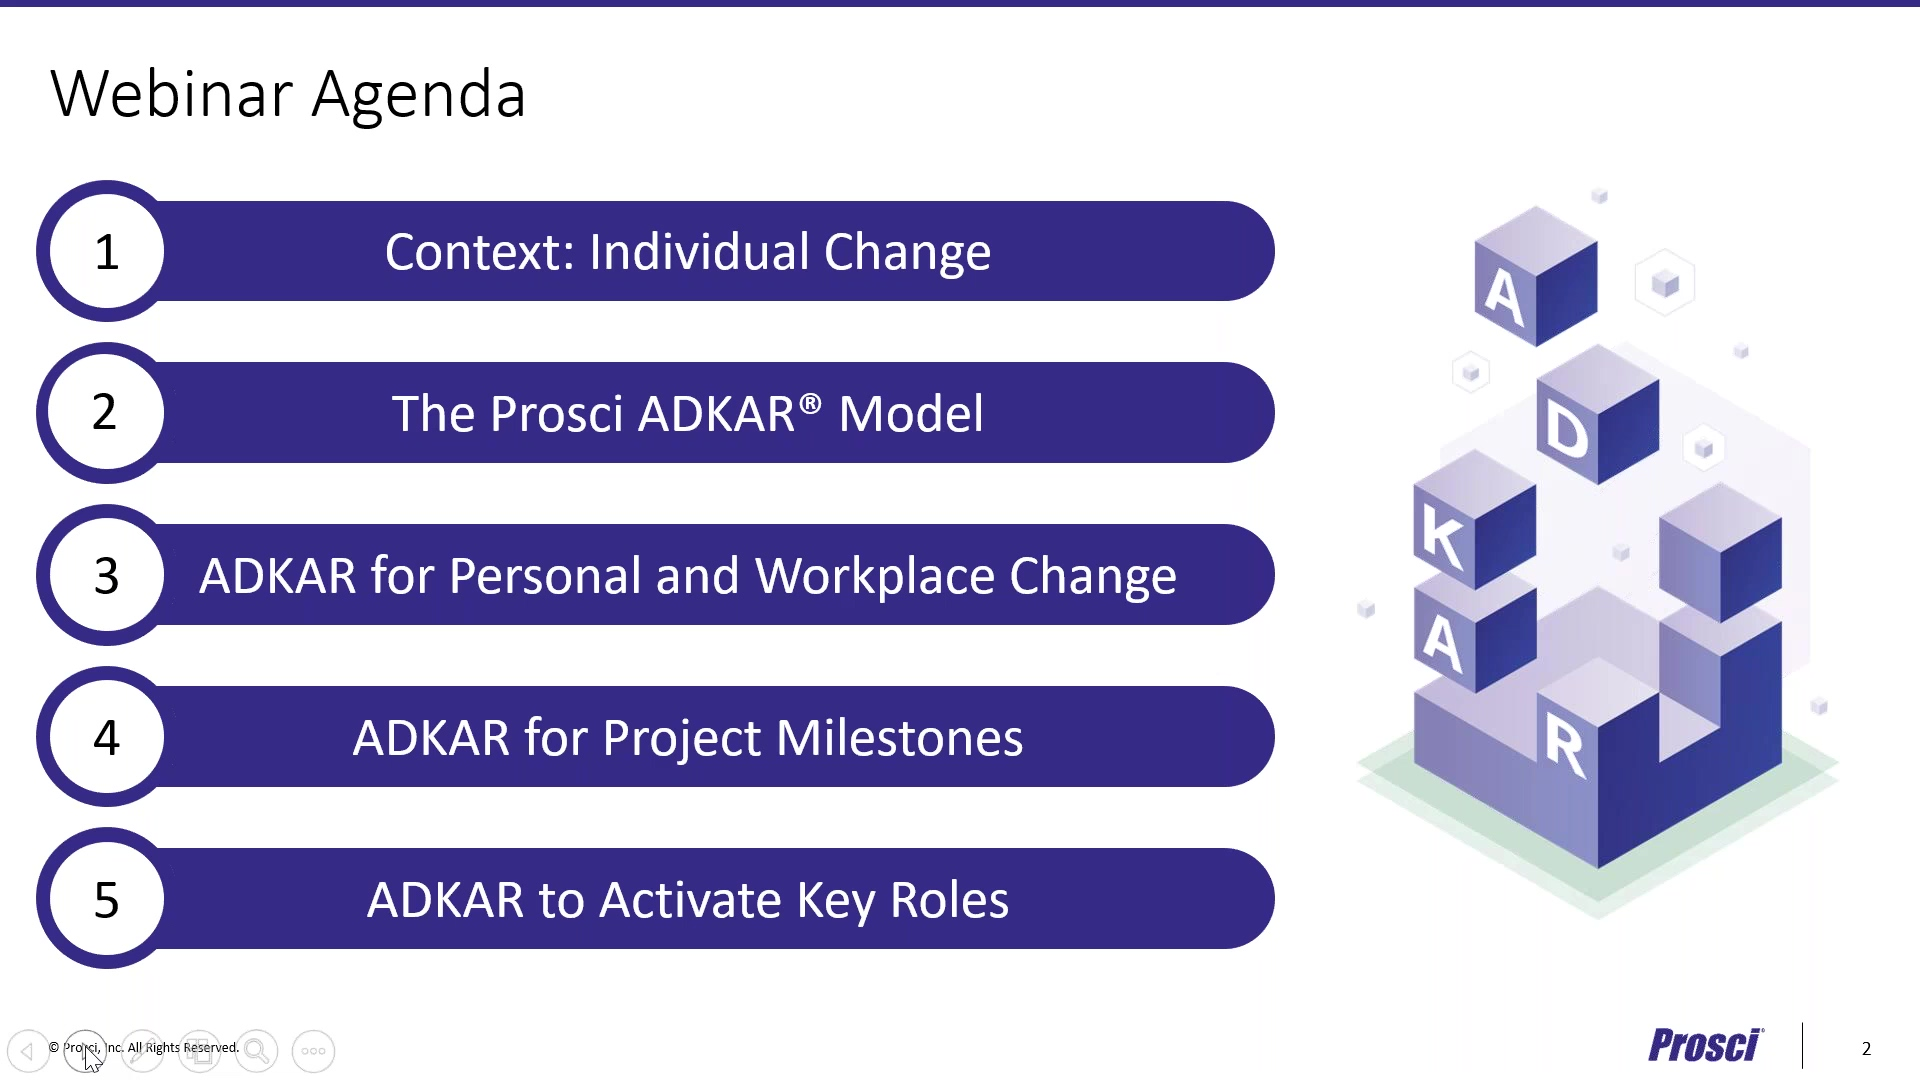 The 5 Building Blocks of Individual Change